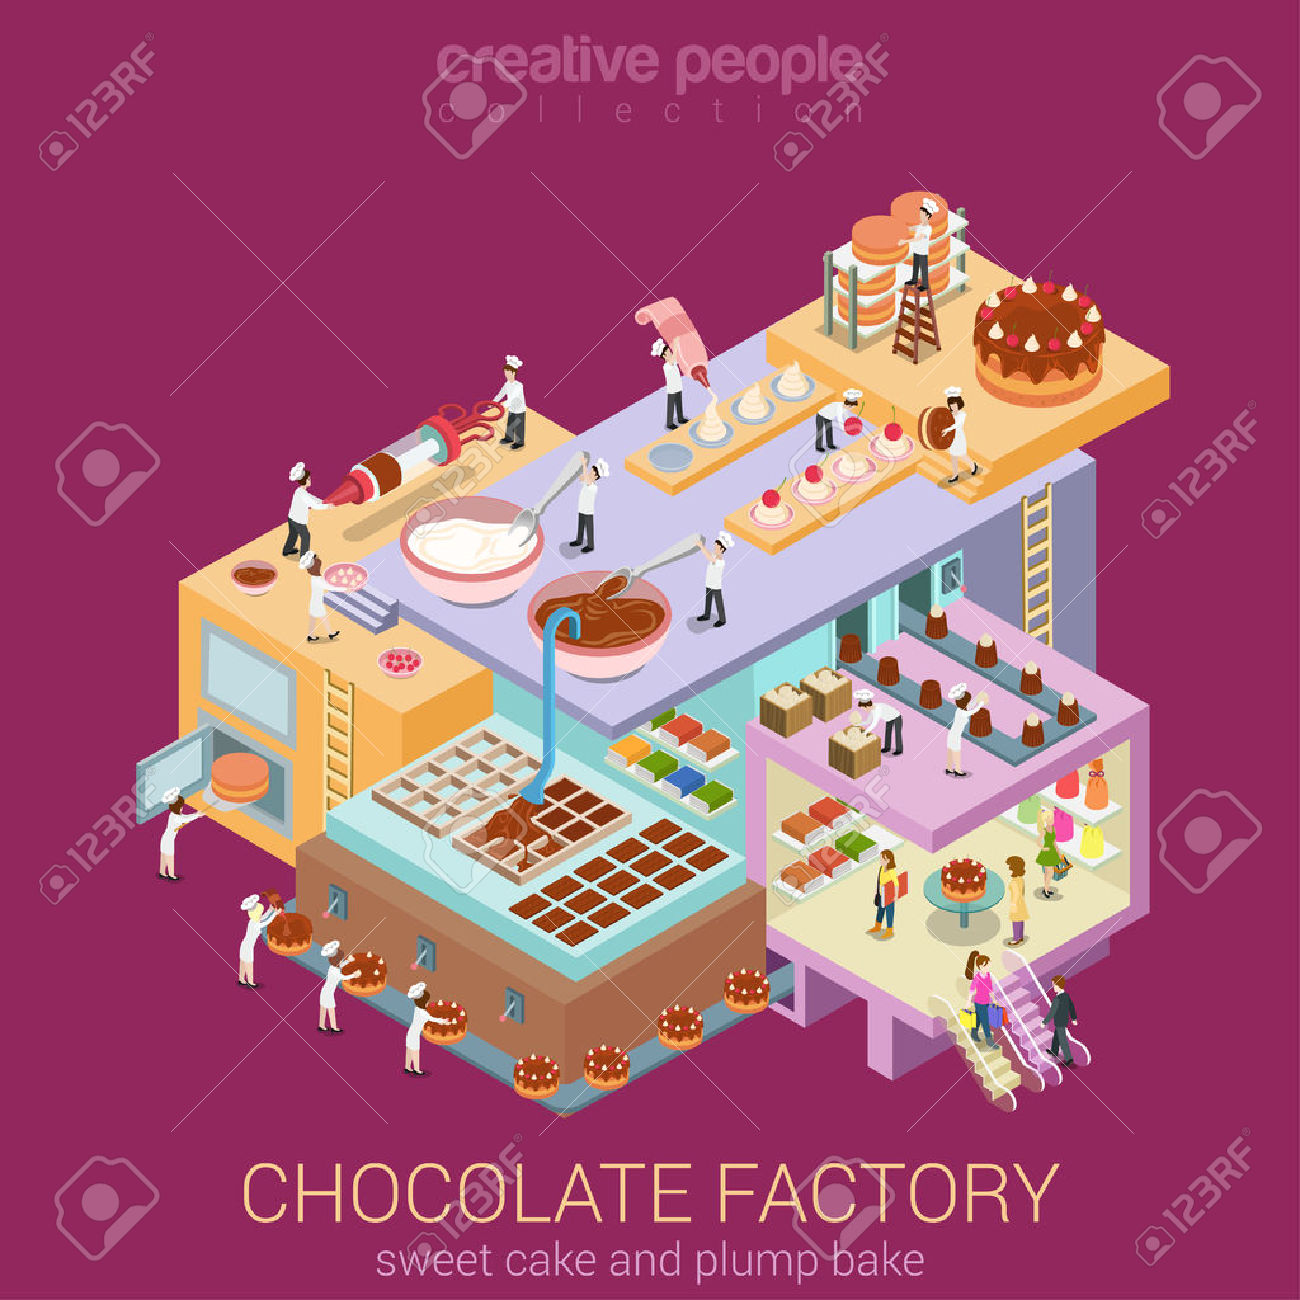 Flat 3d Isometric Abstract Chocolate Factory Building Floors.